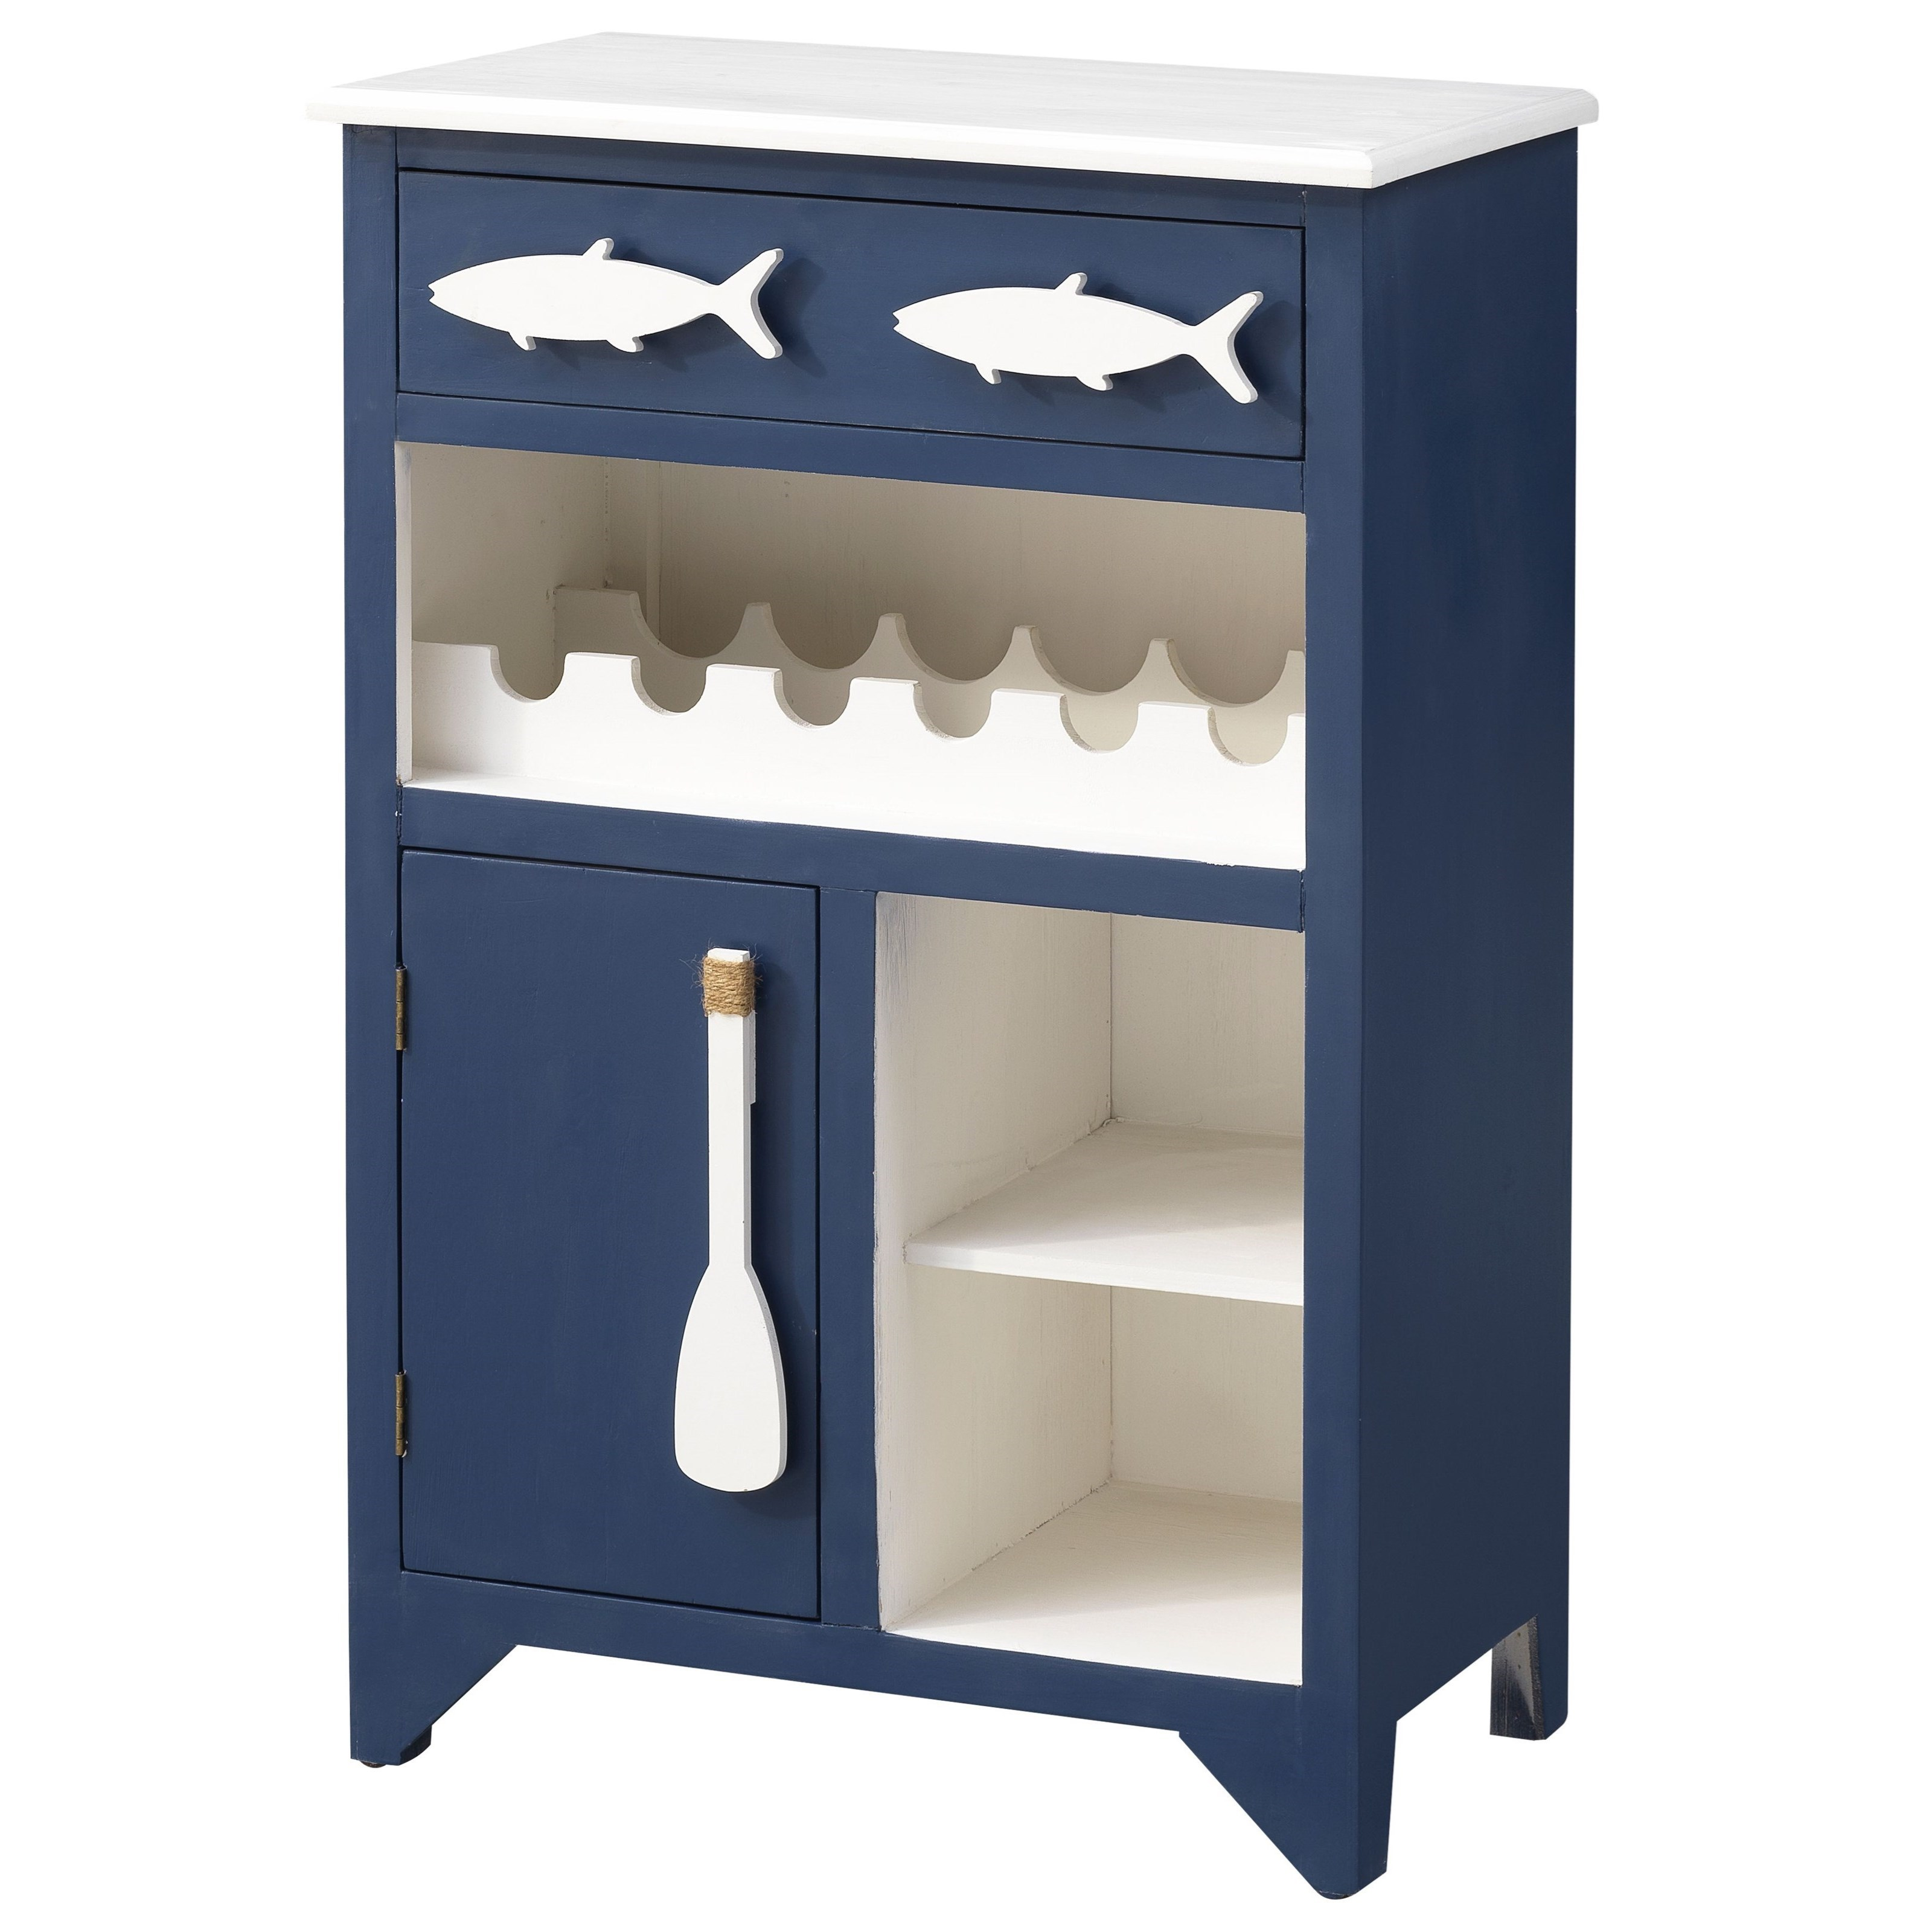 Pieces in Paradise 1-Drawer, 1-Door Wine Server by Coast to Coast Imports at Baer's Furniture